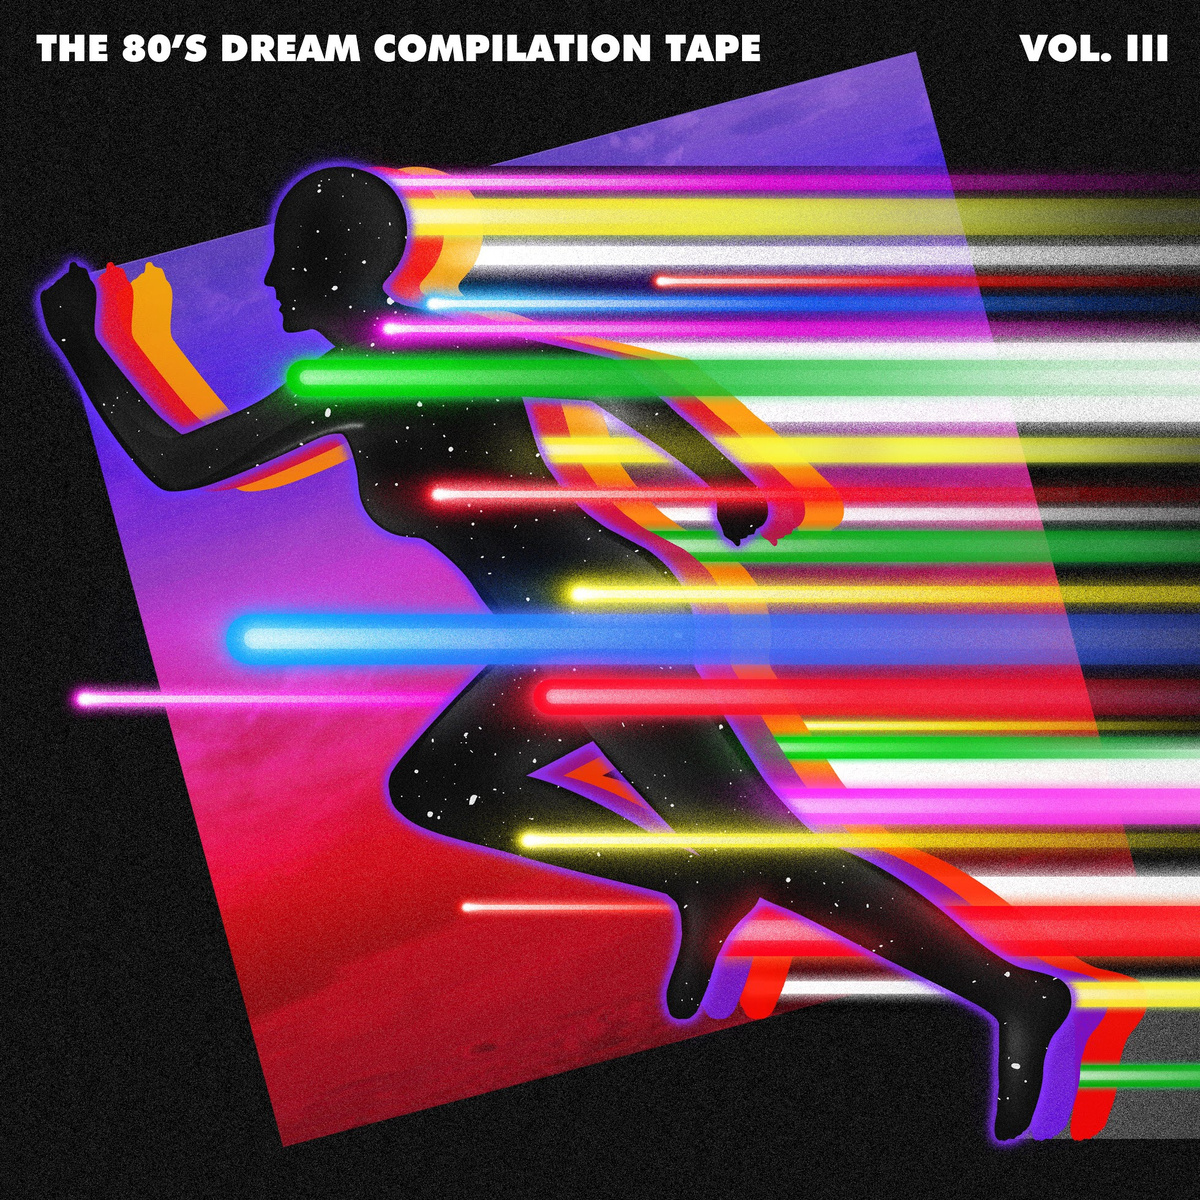 https://newretrowave.bandcamp.com/album/the-80s-dream-compilation-tape-vol-3